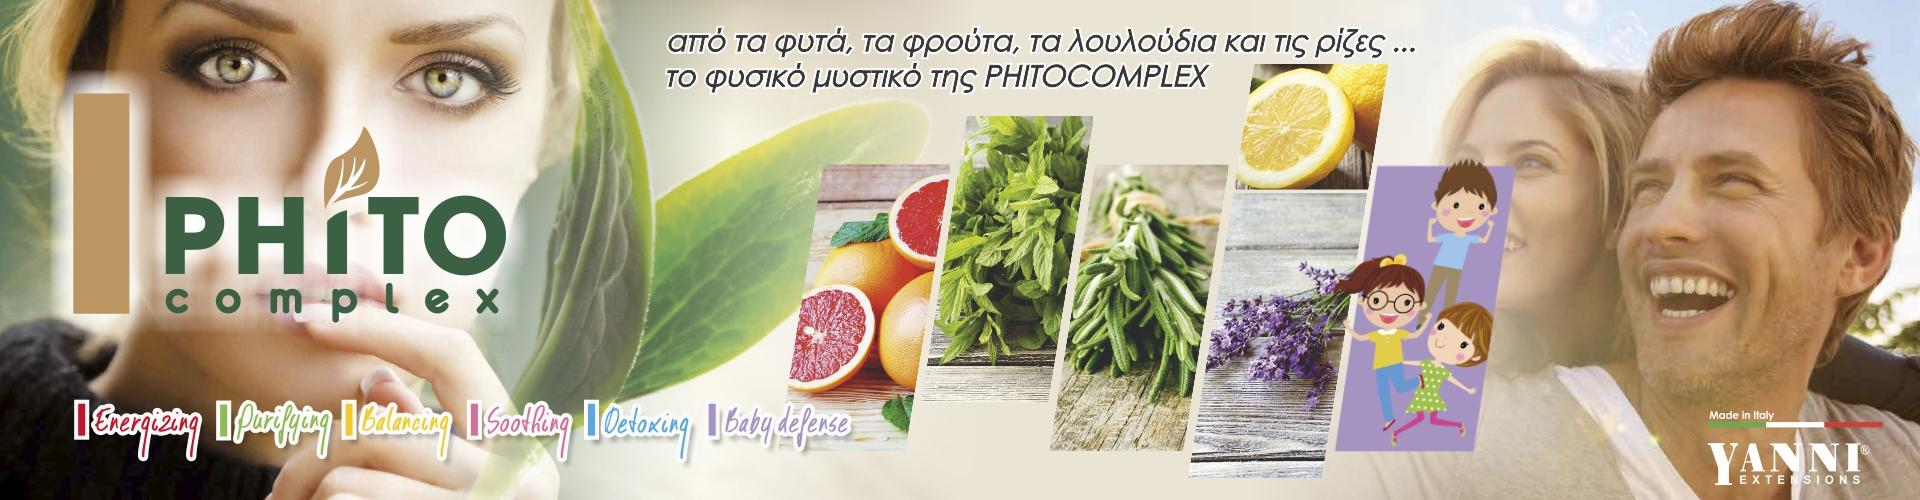 banner_site_PHITOCOMPLEX